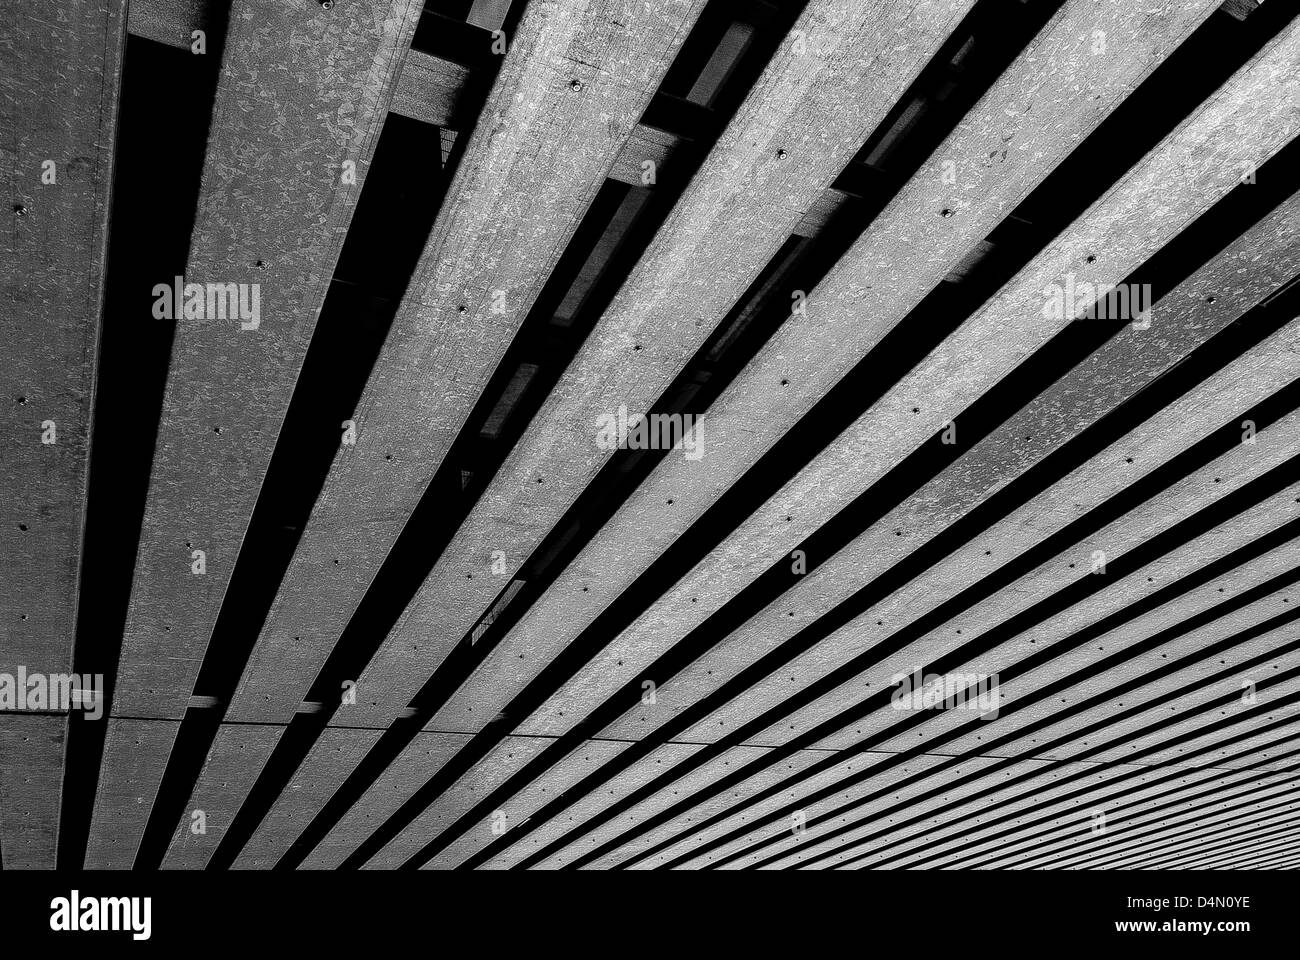 Metal planks that give the impression of depth, at thessaloniki's town hall - Stock Image